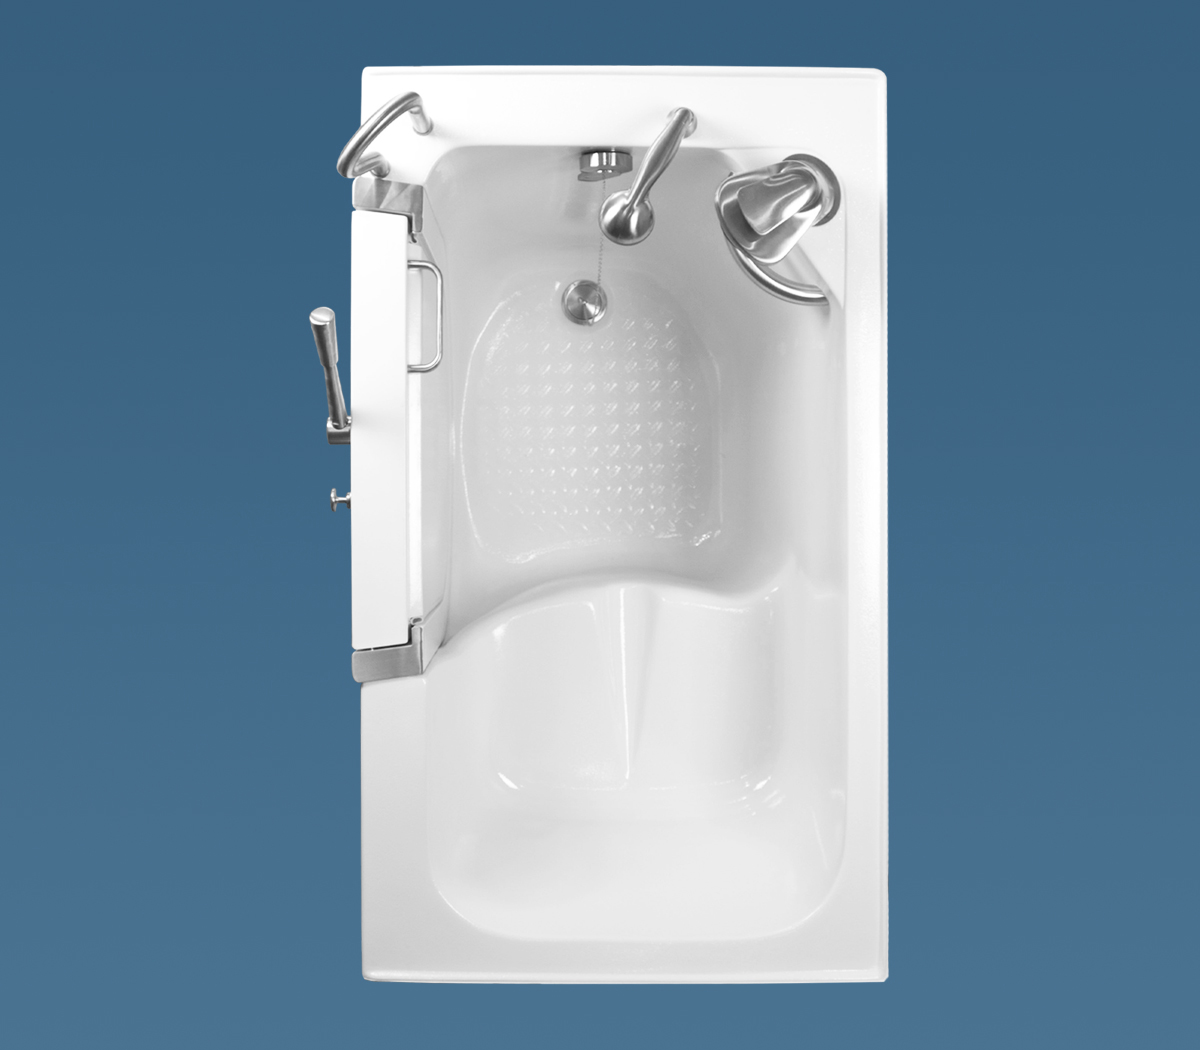 Acrylic Out Swing Walk In Tub Accessible Home Store